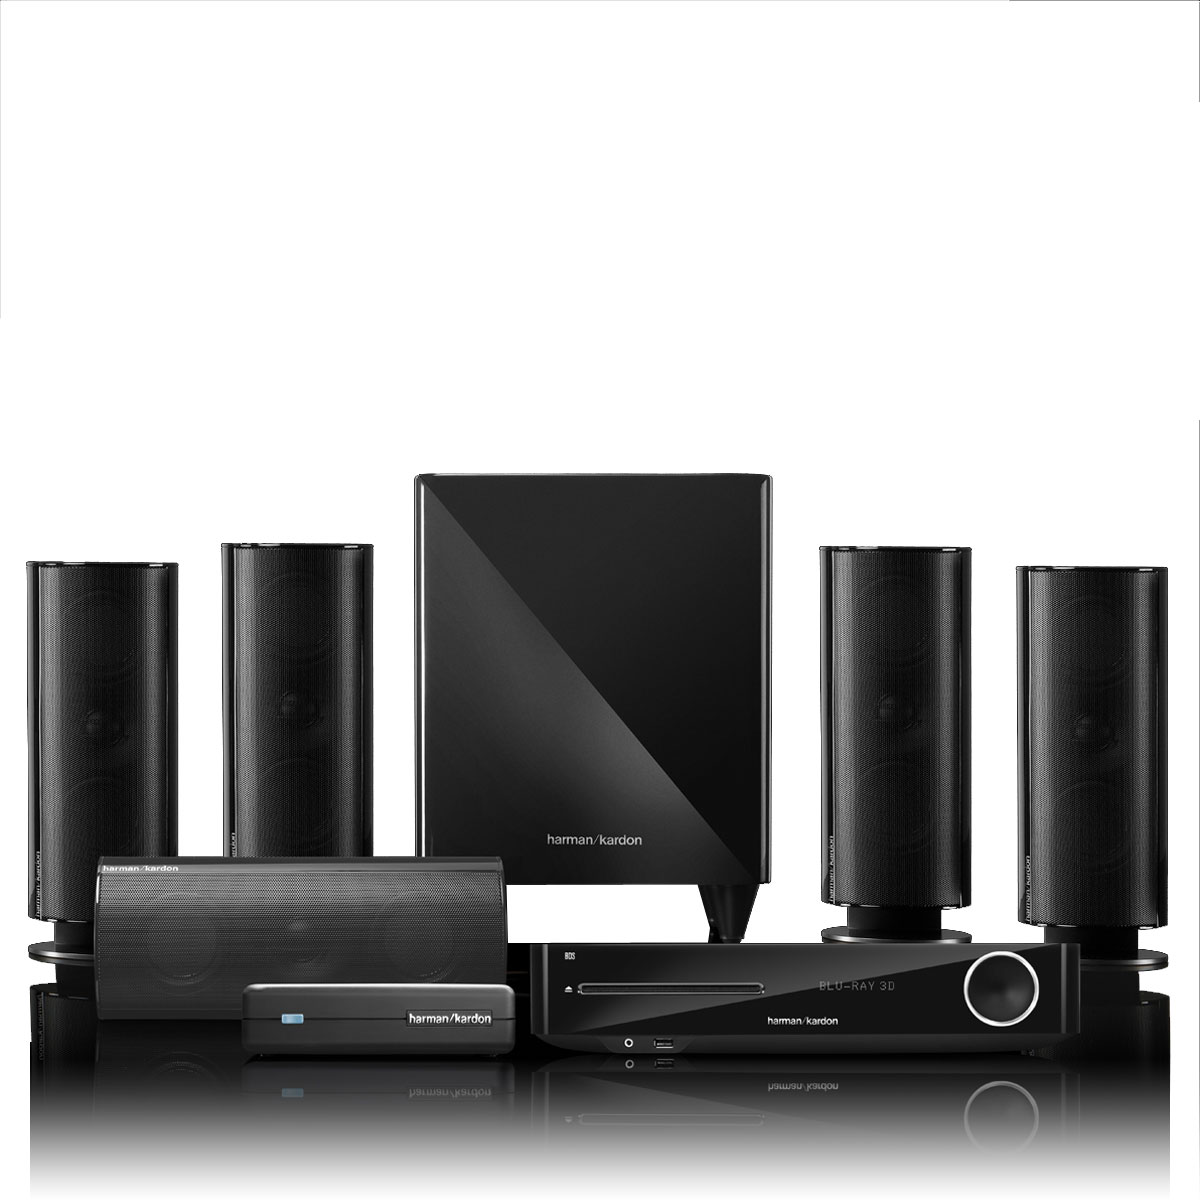 Harman kardon bds 877 bds 877 achat vente ensemble home cin ma sur ldlc - Ensemble tv home cinema ...